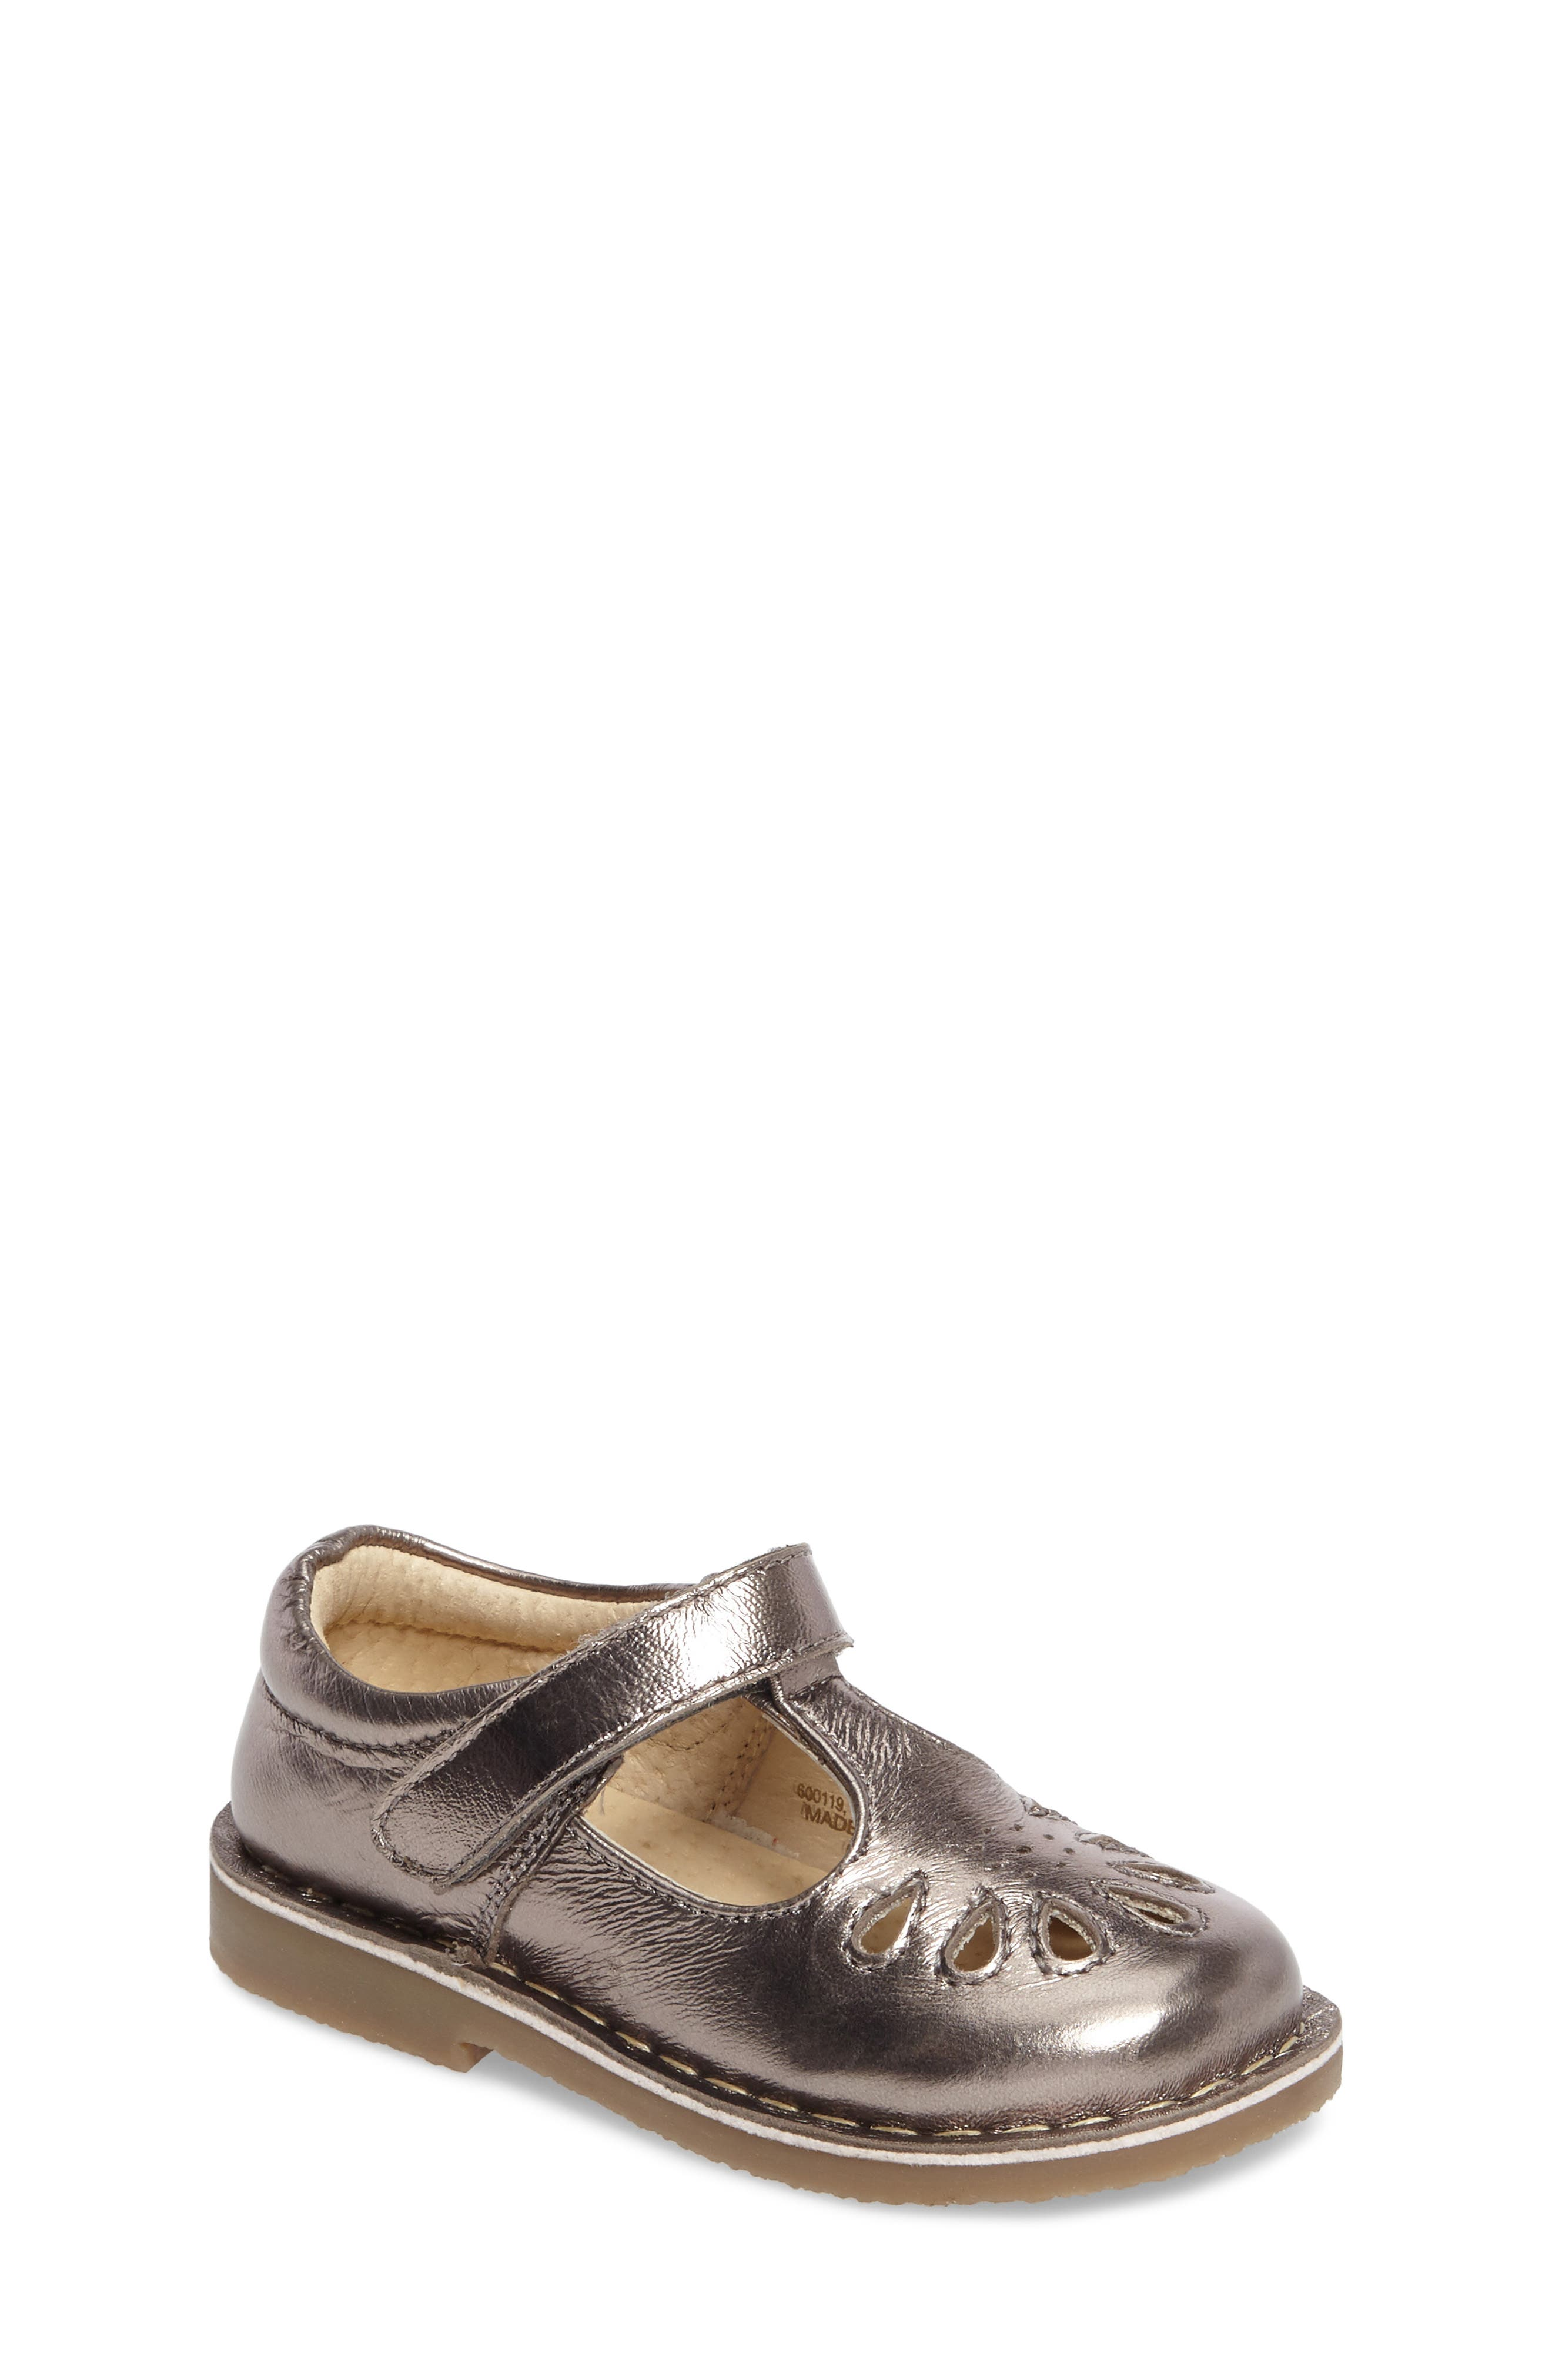 Perforated T-Strap Mary Jane,                         Main,                         color, Pewter Metallic